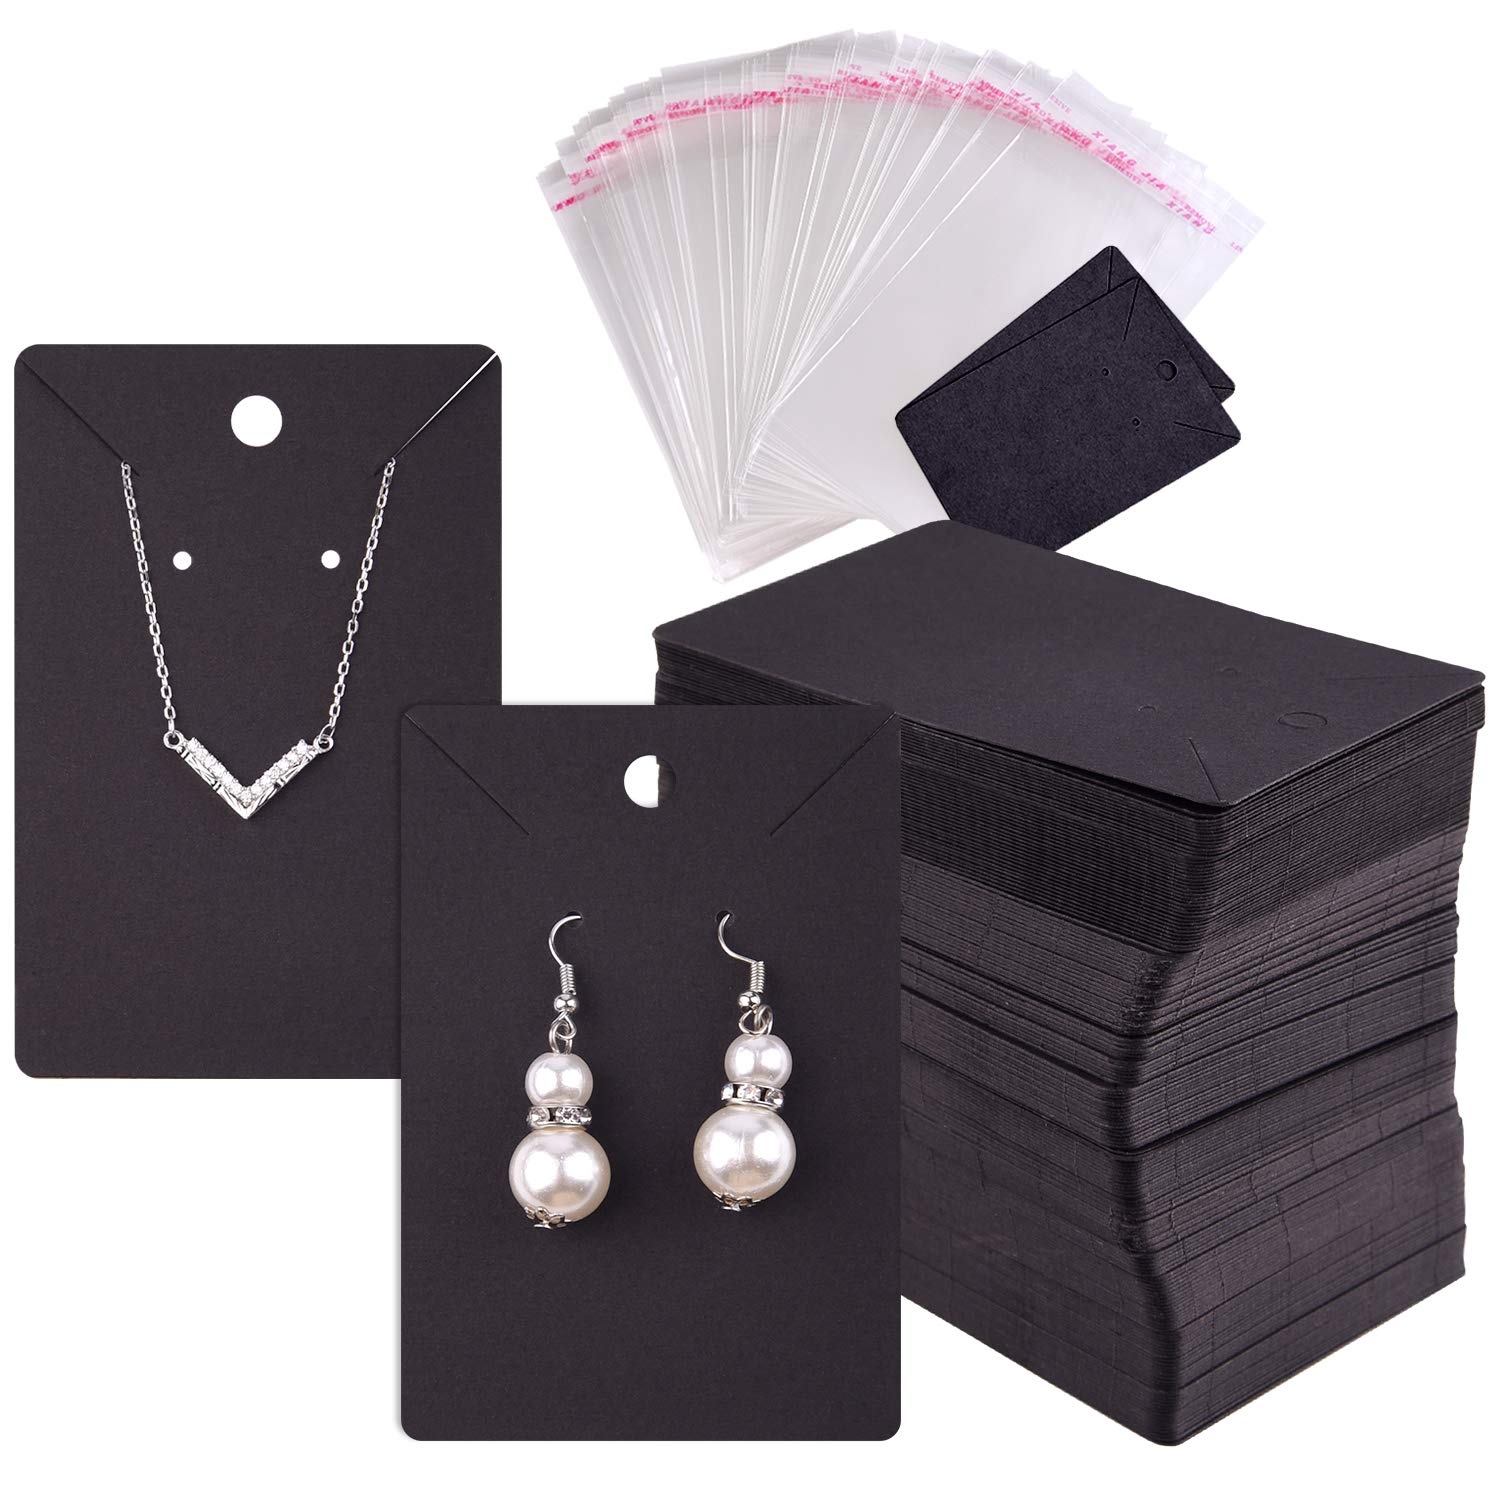 TUPARKA 120 Pcs Earring Display Card, Necklace Display Cards with120Pcs Self-Seal Bags,Earring Card Holder Blank Kraft Paper Tags for DIY Ear Studs and Earrings,3.5 x 2 Inches (Black)